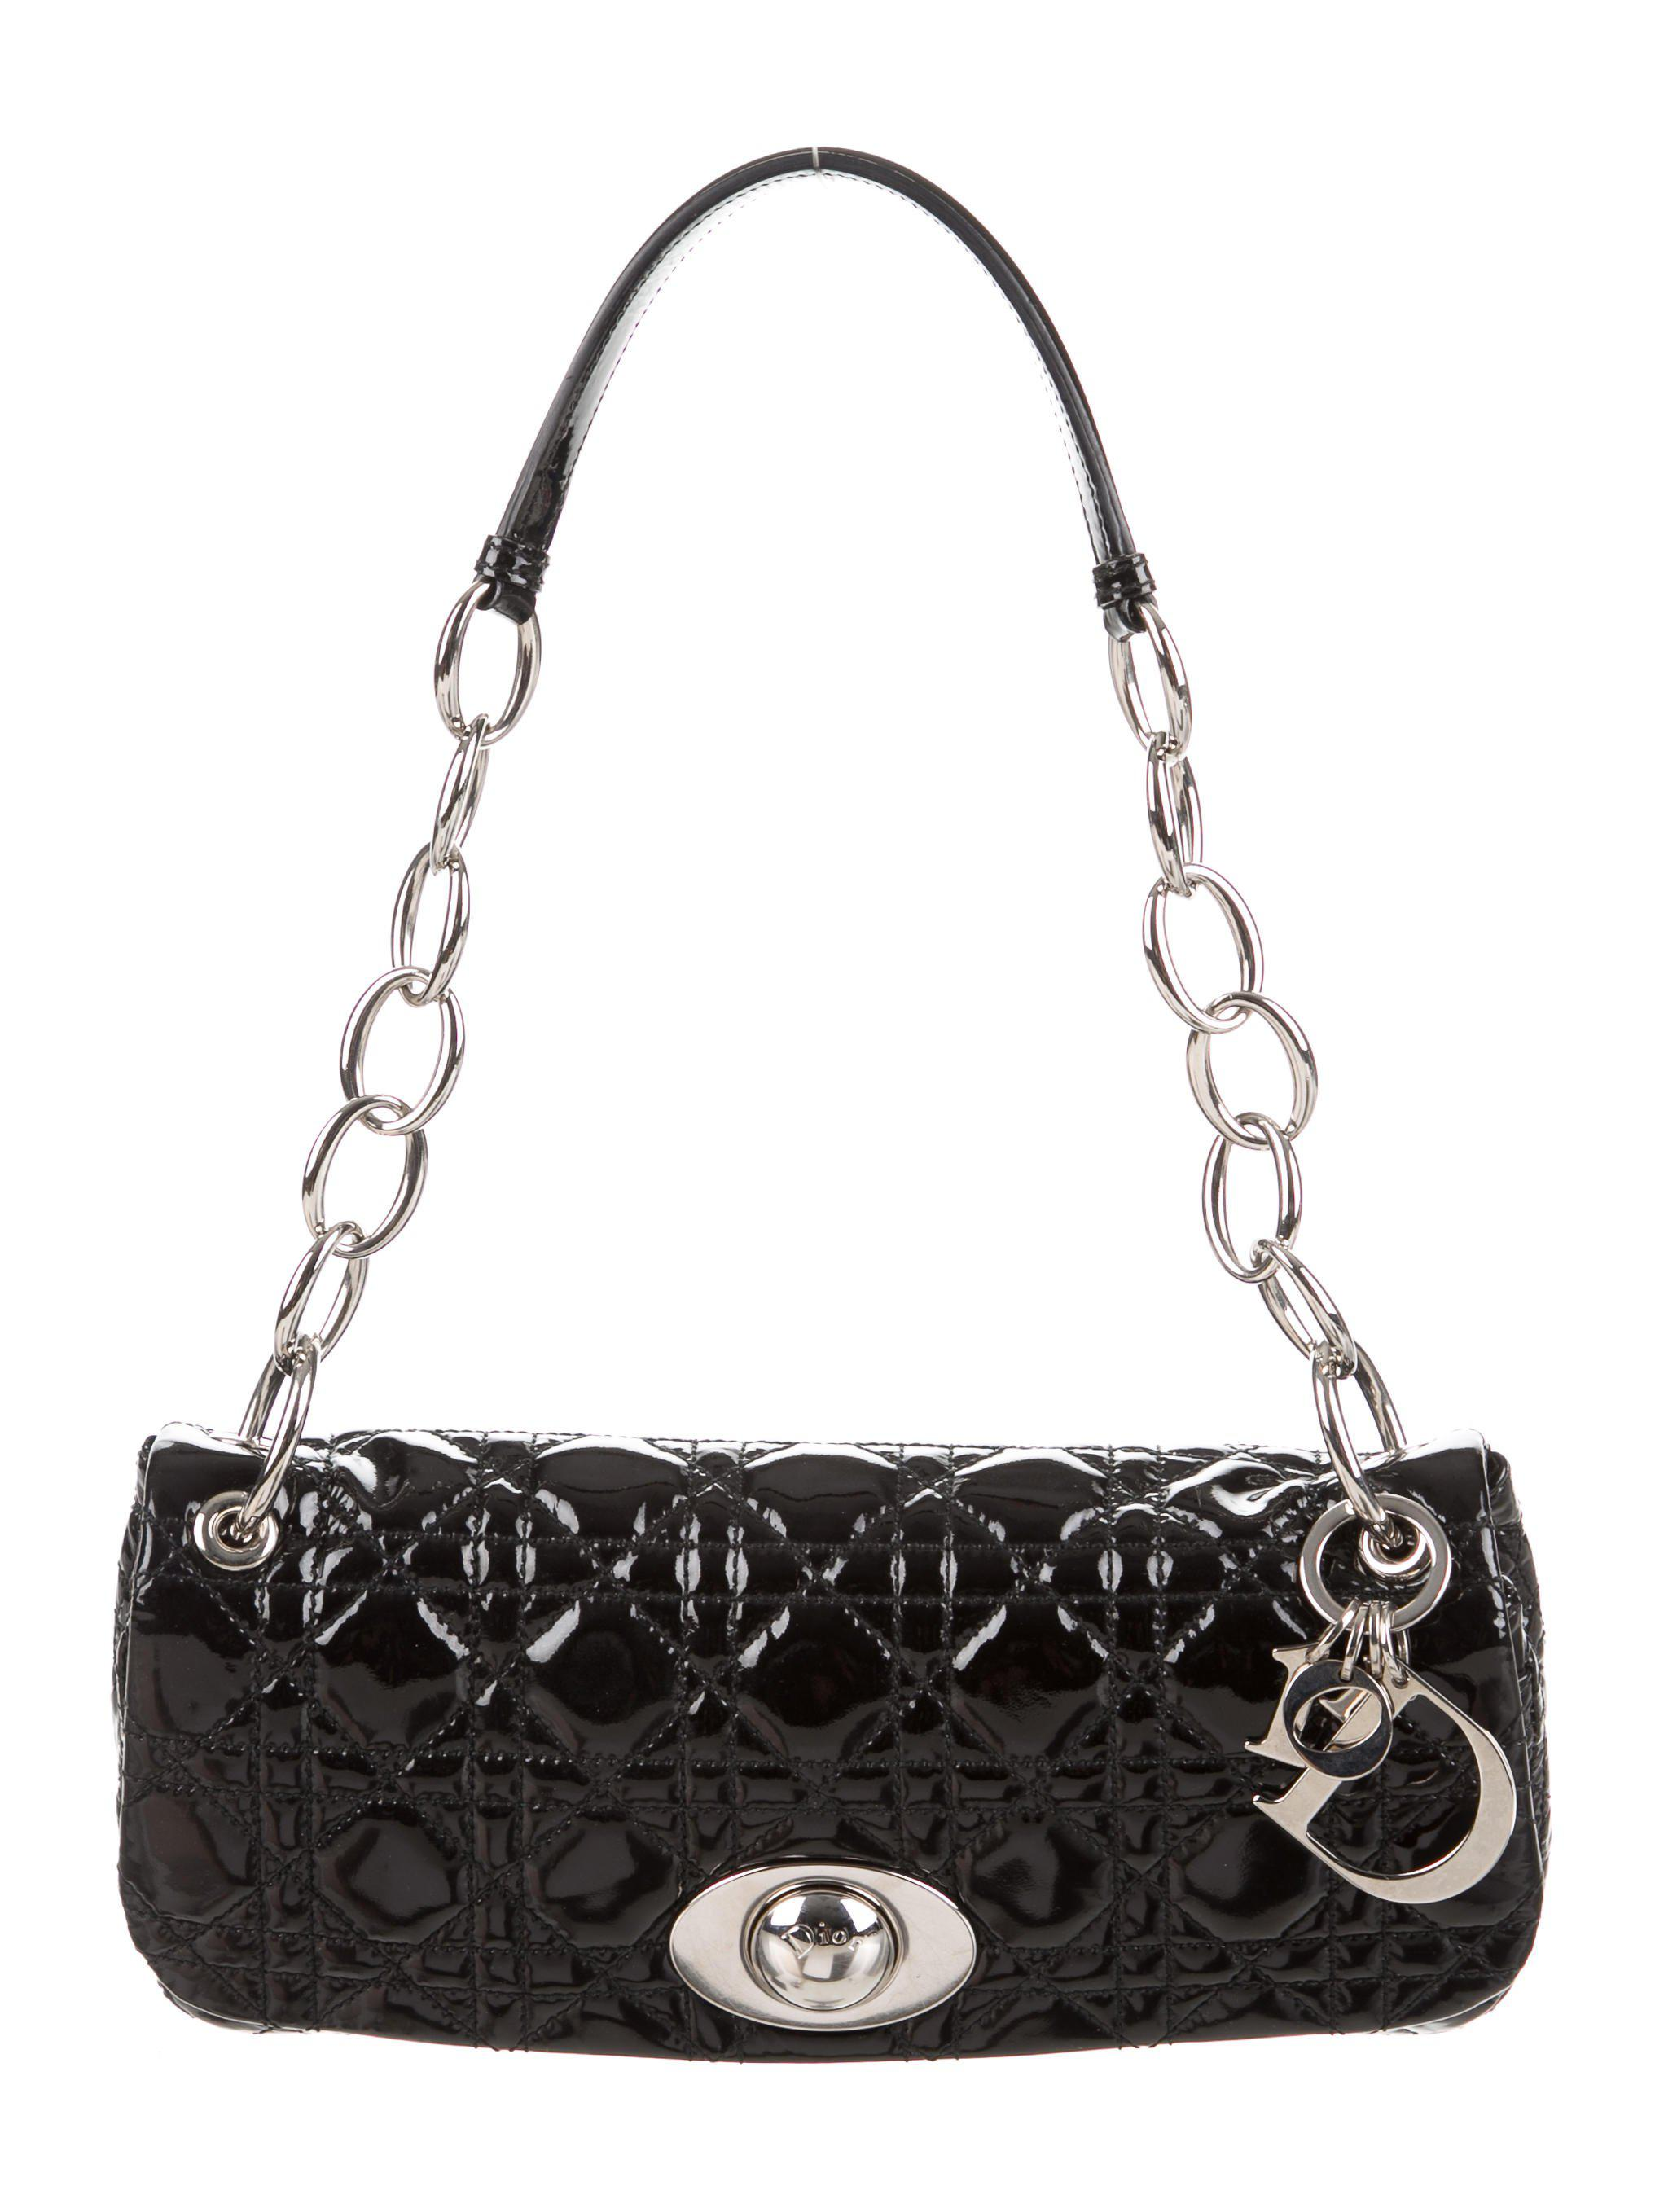 Lyst - Dior Rendezvous Cannage Flap Bag Black in Metallic 008c5ce45241f